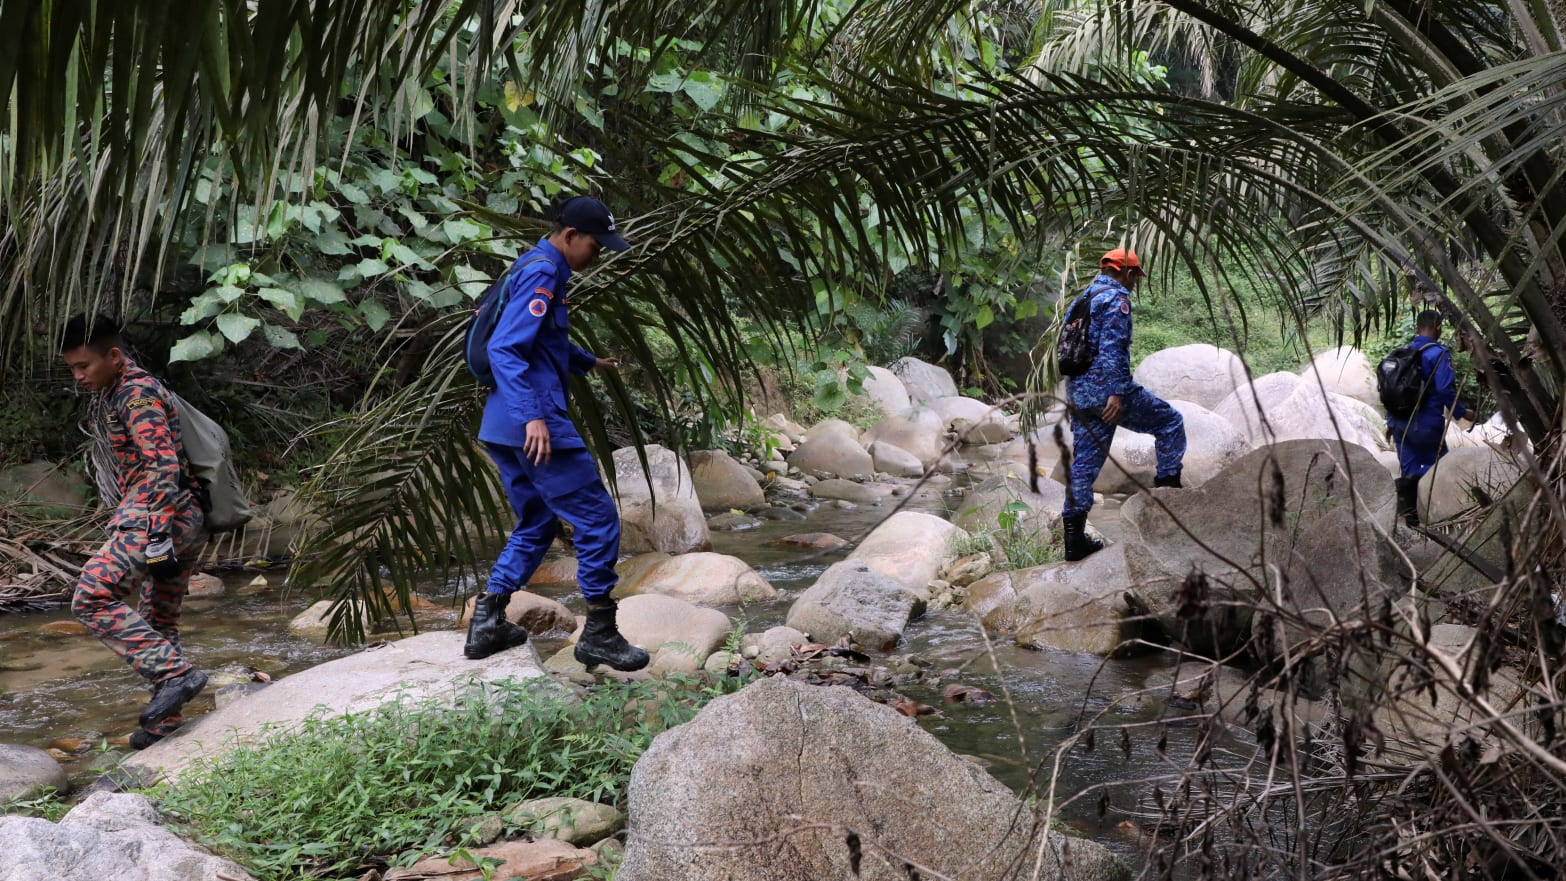 Nora Anne Quoirin: Body of Nude Teen Found in Malaysian Jungle Thought to Be Missing Irish 15 Year Old